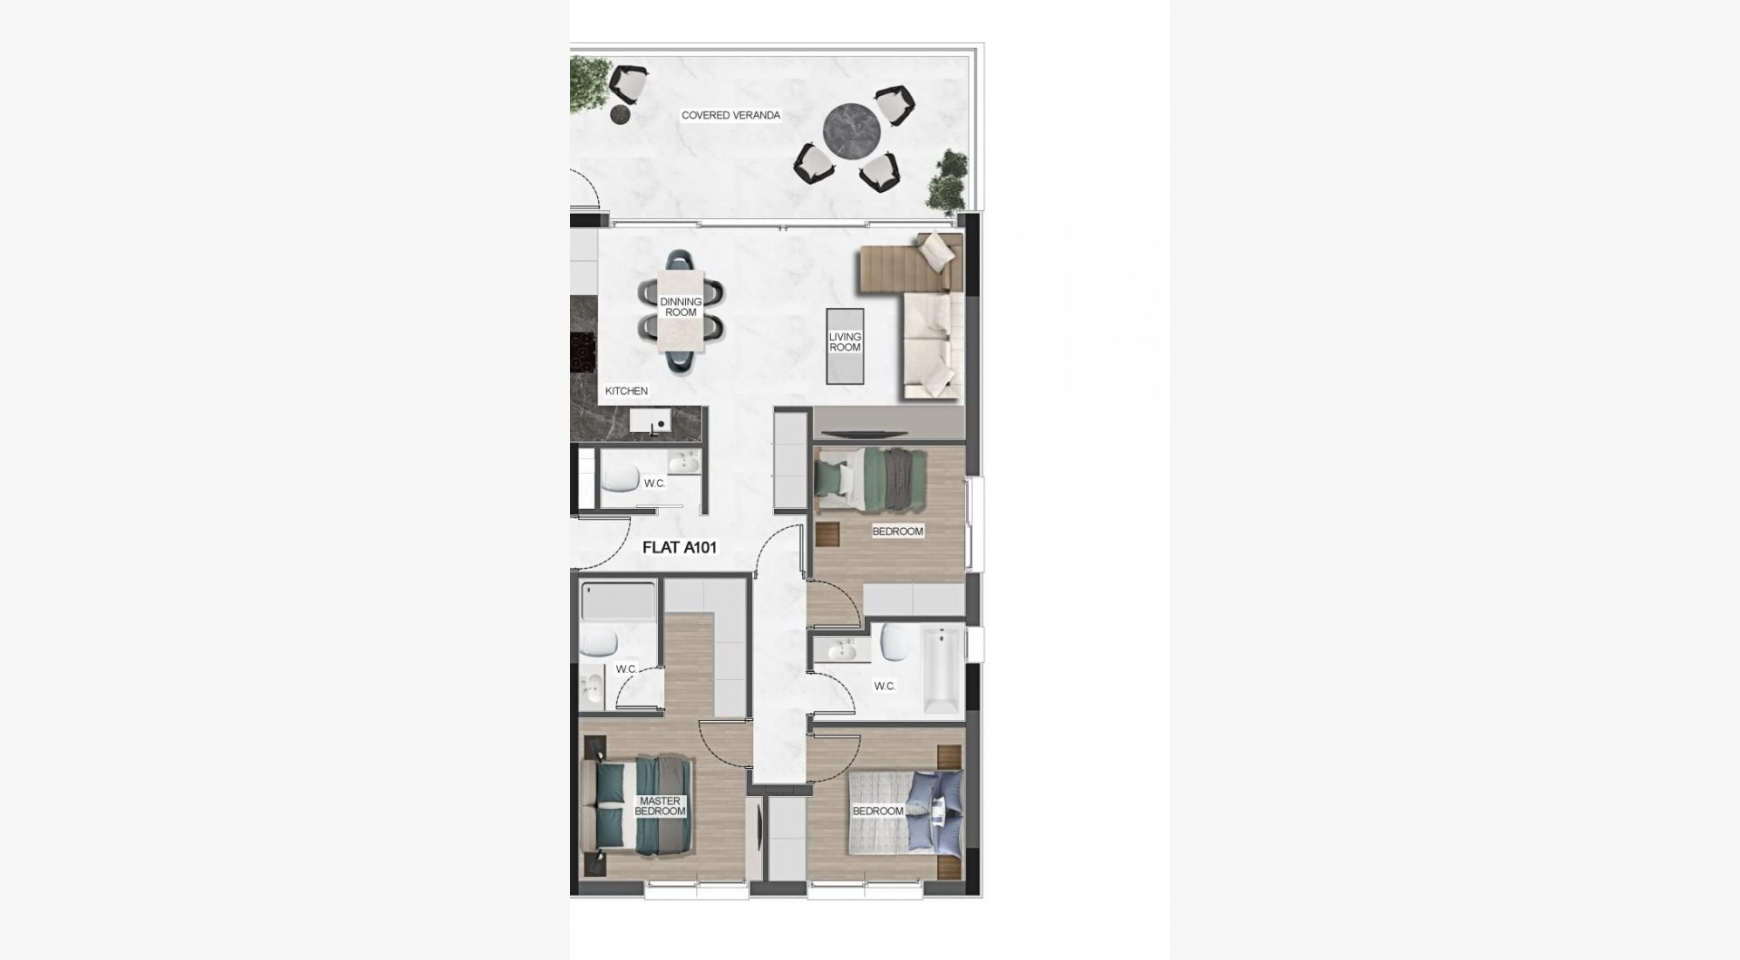 Urban City Residences, Block B. New Spacious 3 Bedroom Apartment 101 in the City Centre - 42